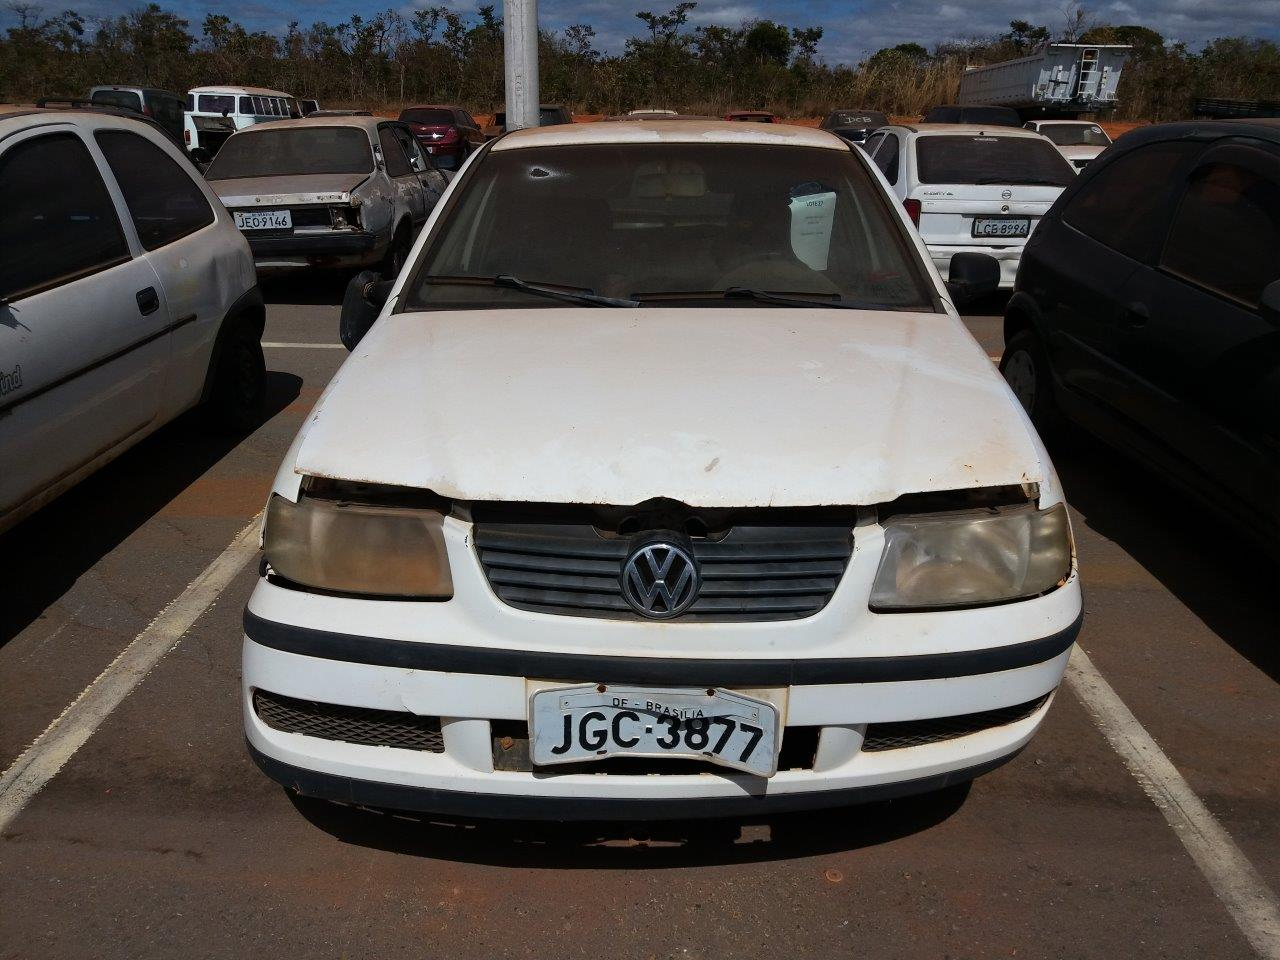 SUCATA DE VW/GOL 16V PLUS